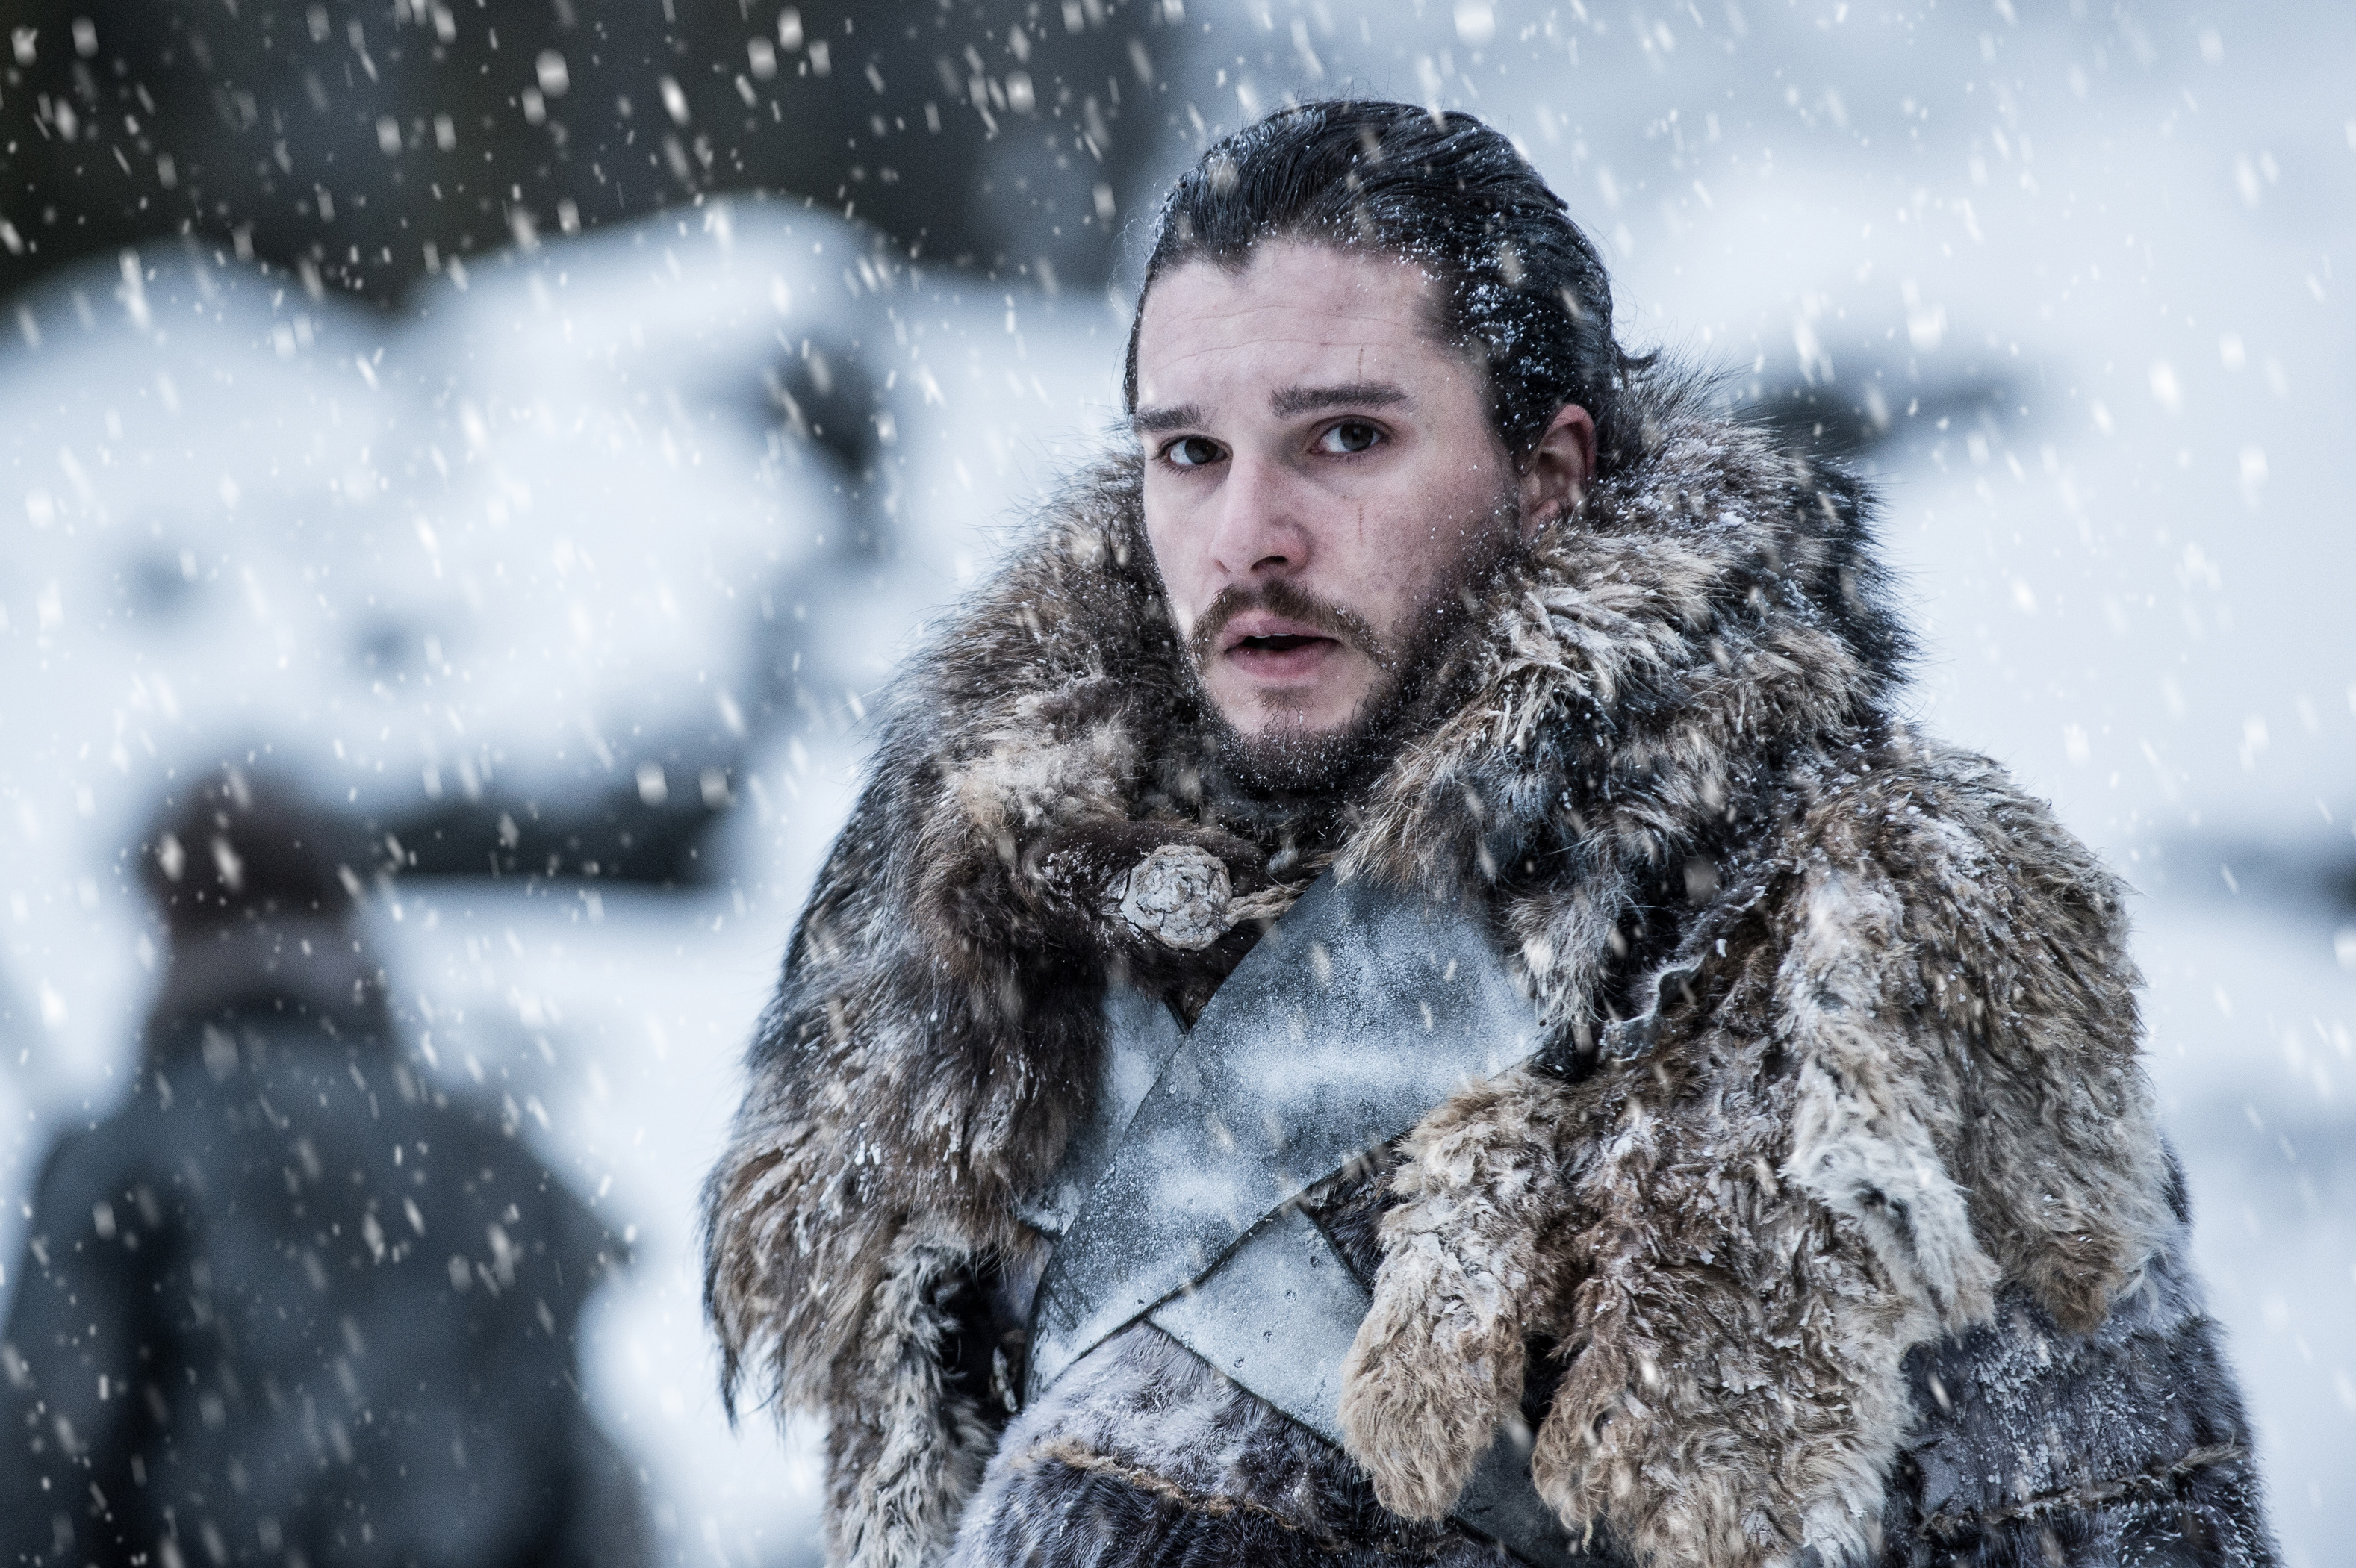 Kit Harington as Jon Snow Game of Thrones